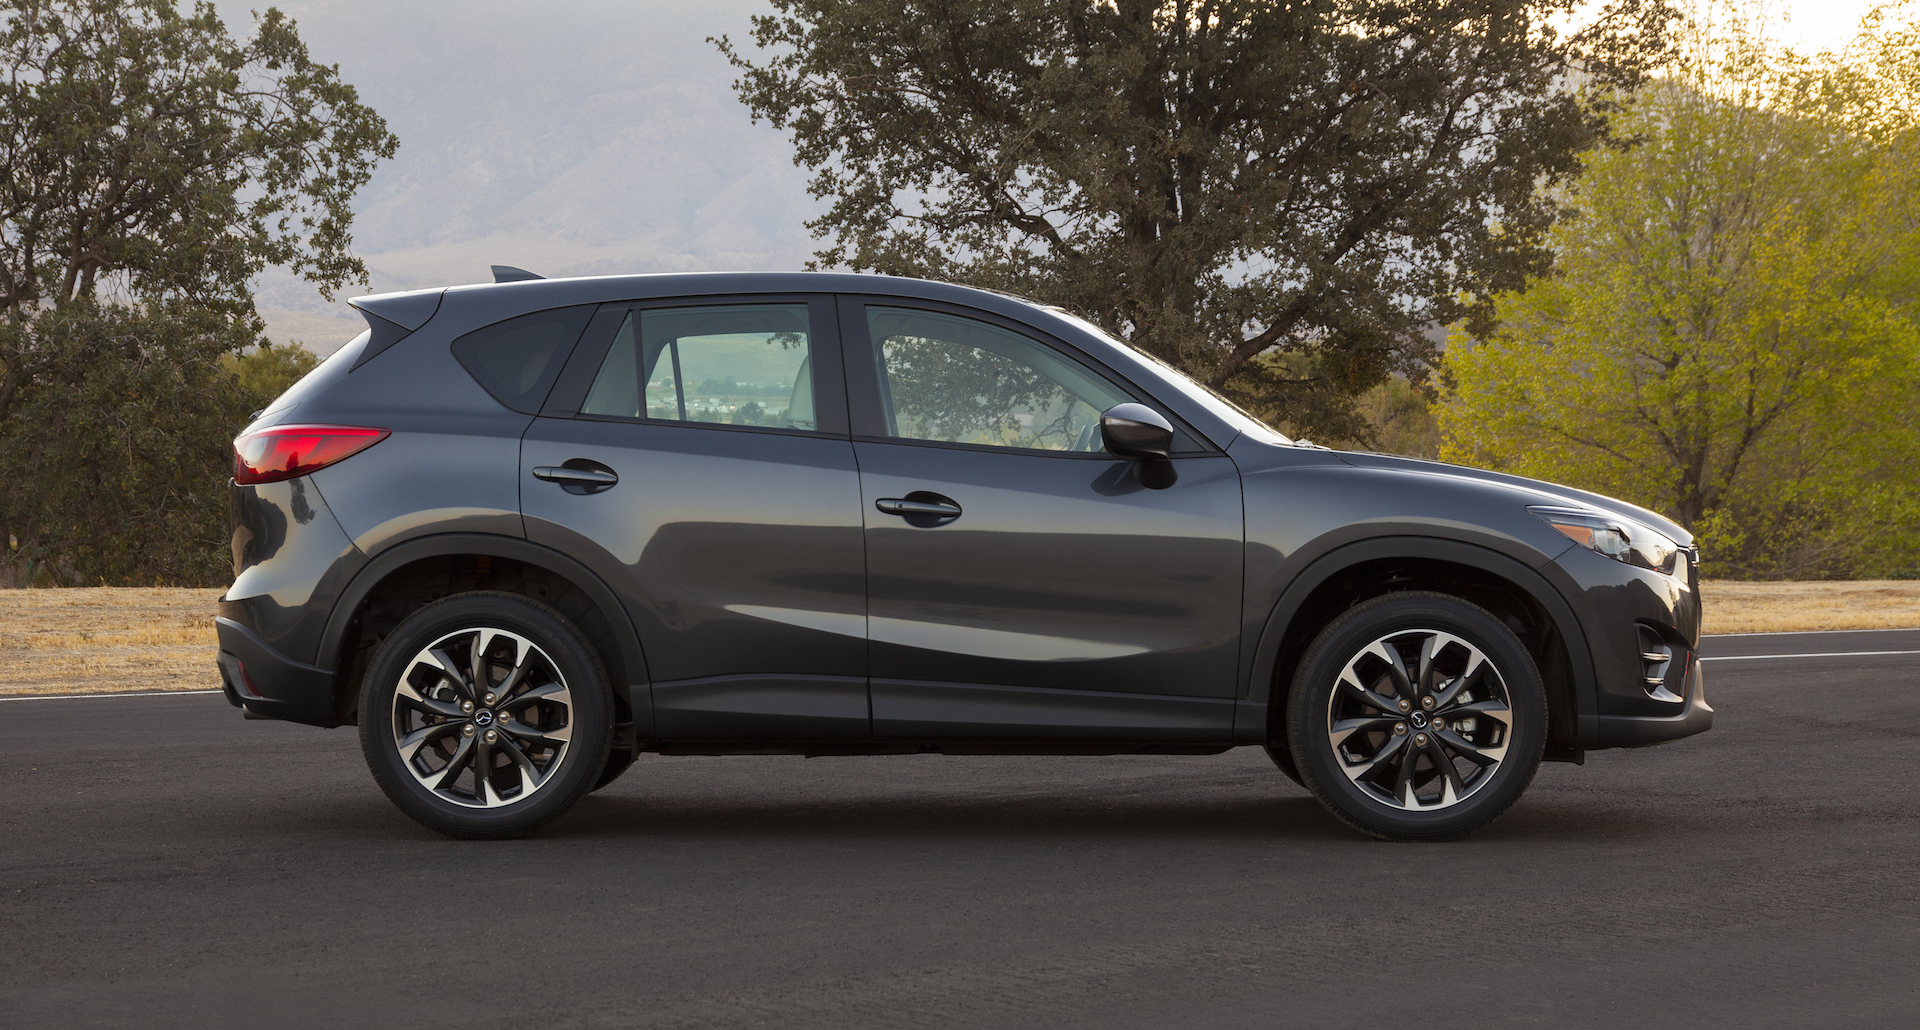 2016 mazda cx 5 review ratings specs prices and photos the car connection. Black Bedroom Furniture Sets. Home Design Ideas